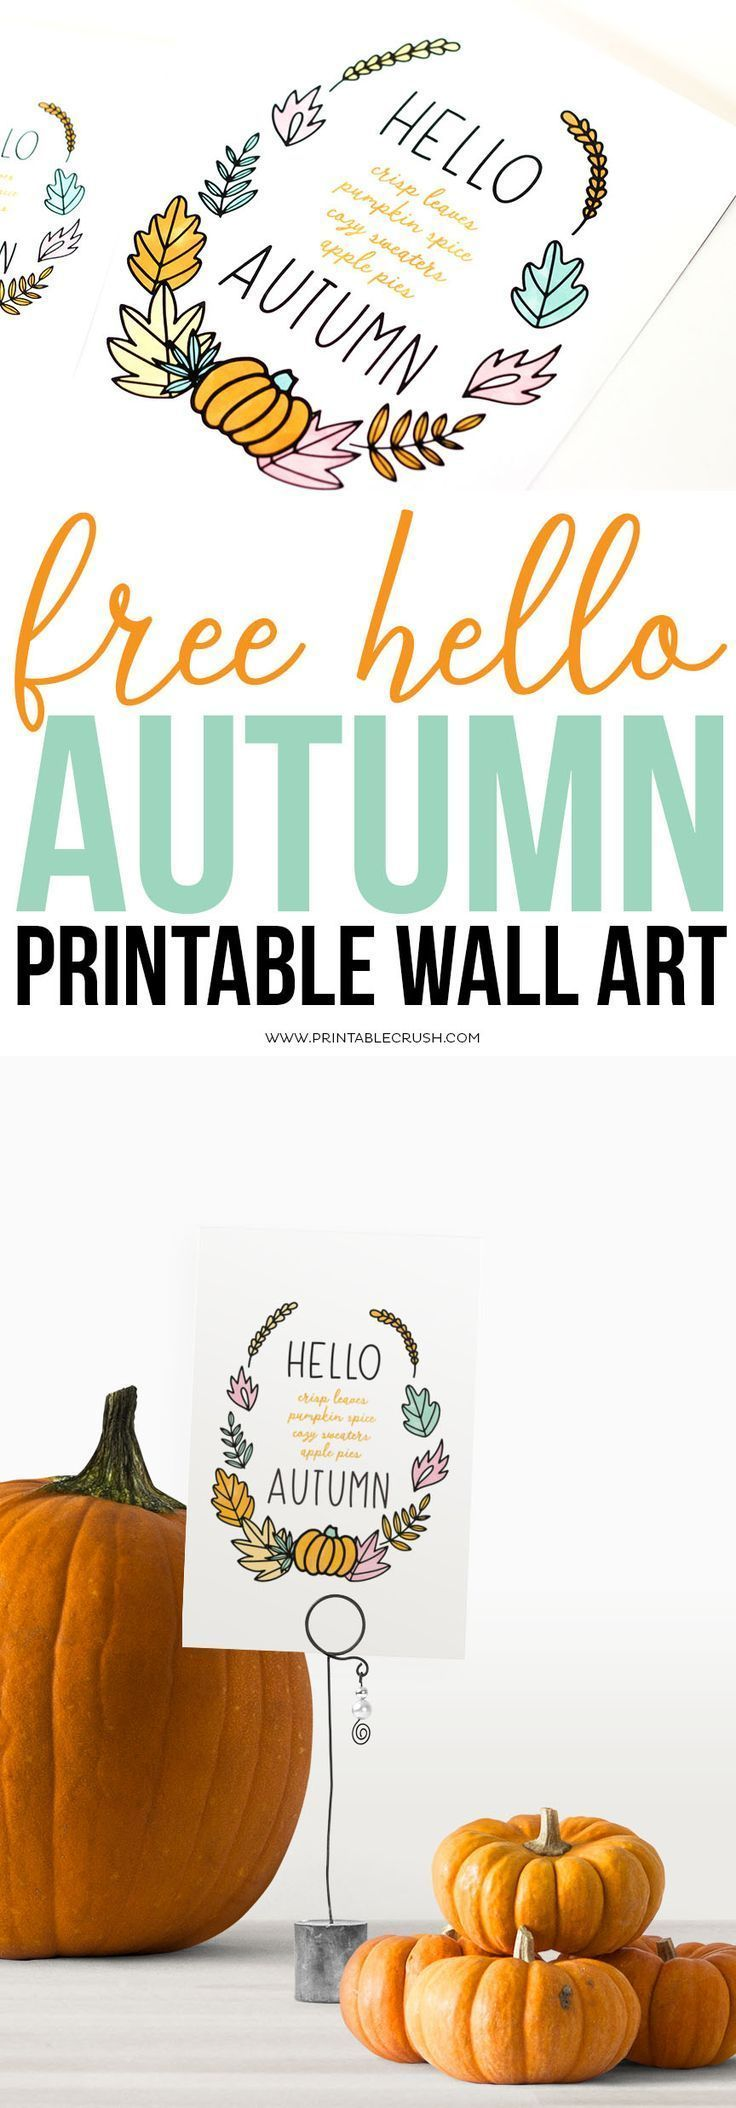 FREE Hello Autumn Printable Wall Art - Printable Crush #helloautumn